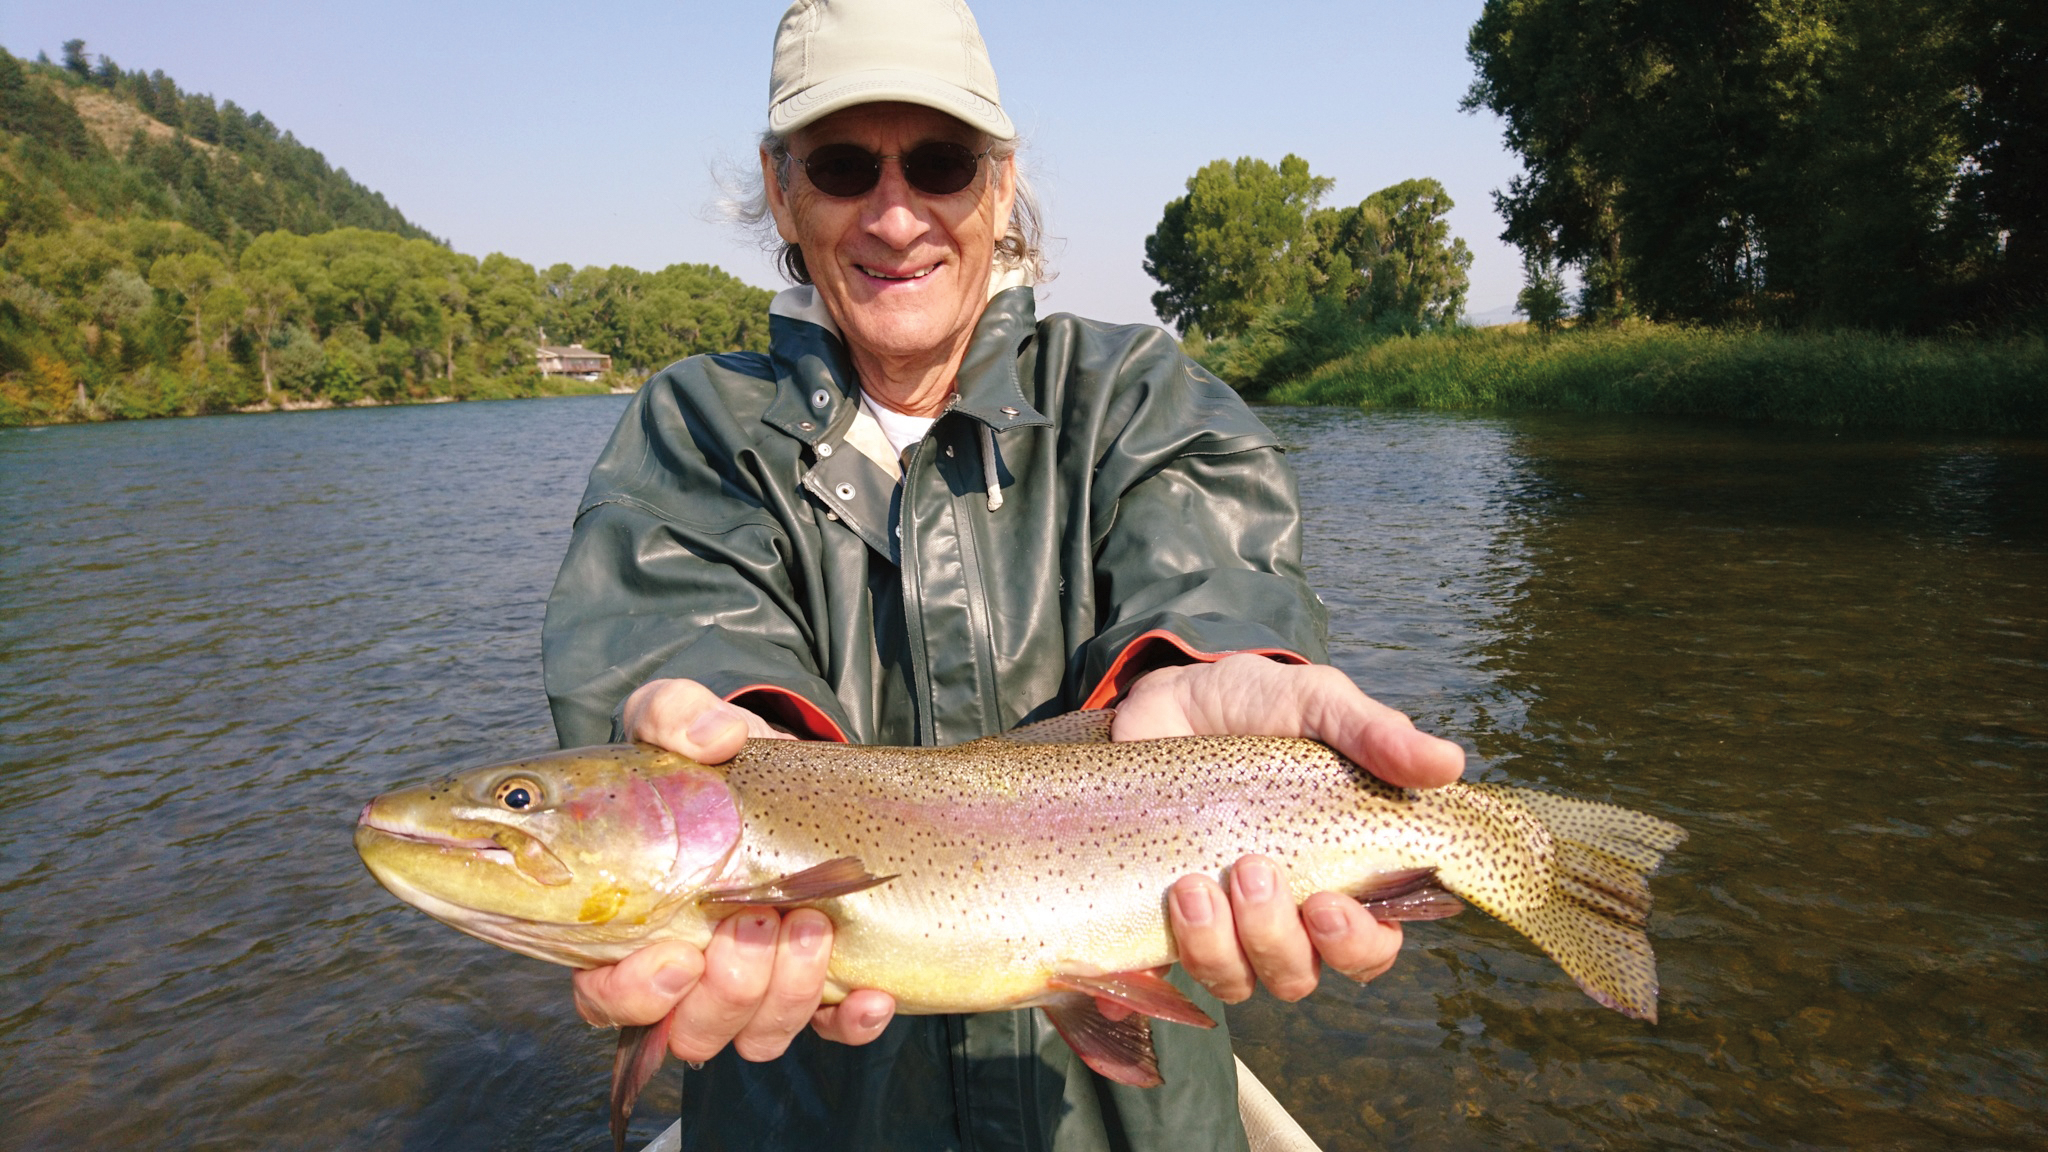 Peter de Bretteville '59 had lots of success on a fly-fishing trip to Idaho with his grandson.